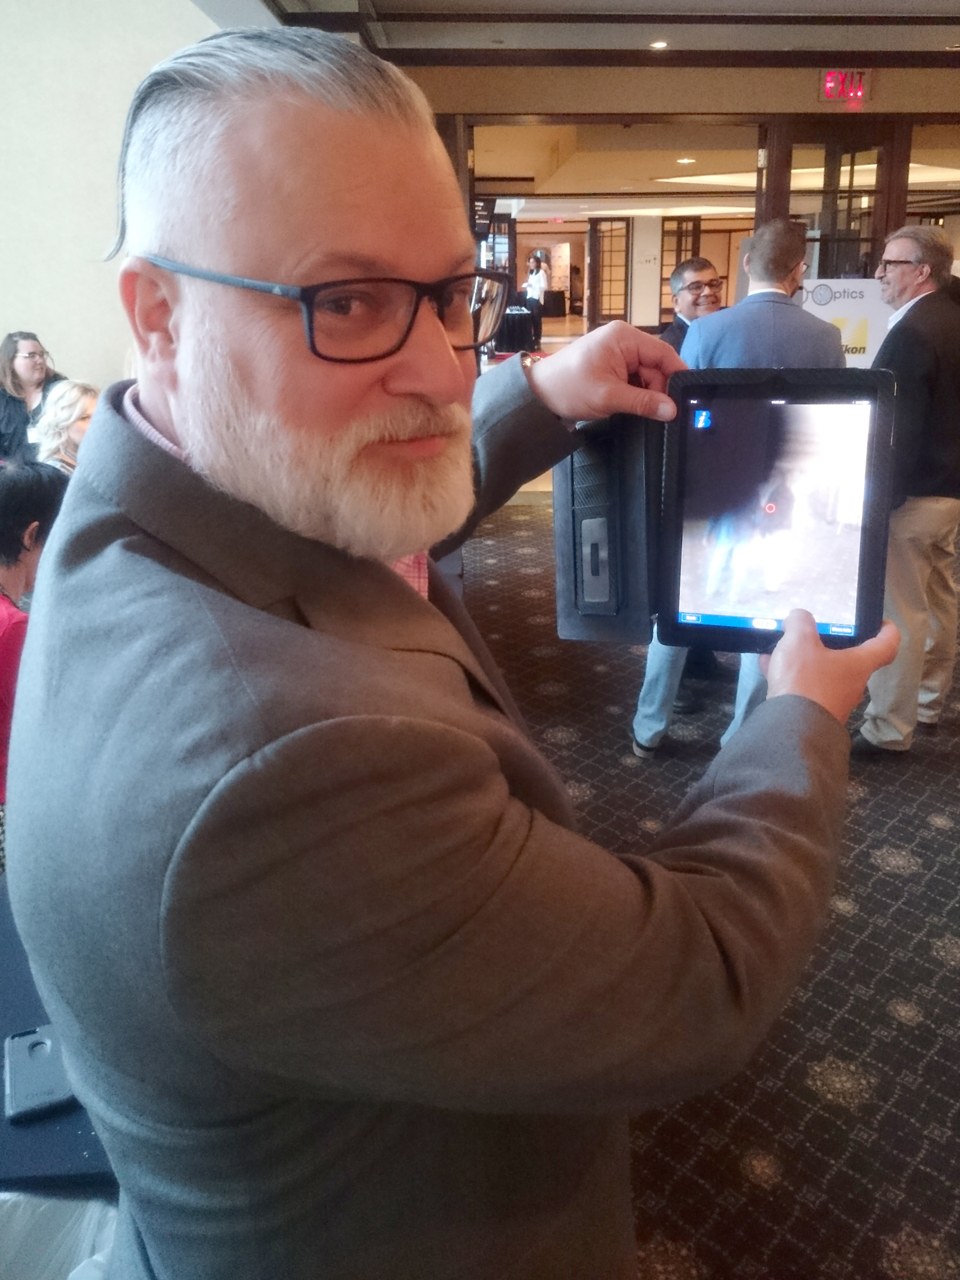 Eyecare apps provide information, assistance at your fingertips